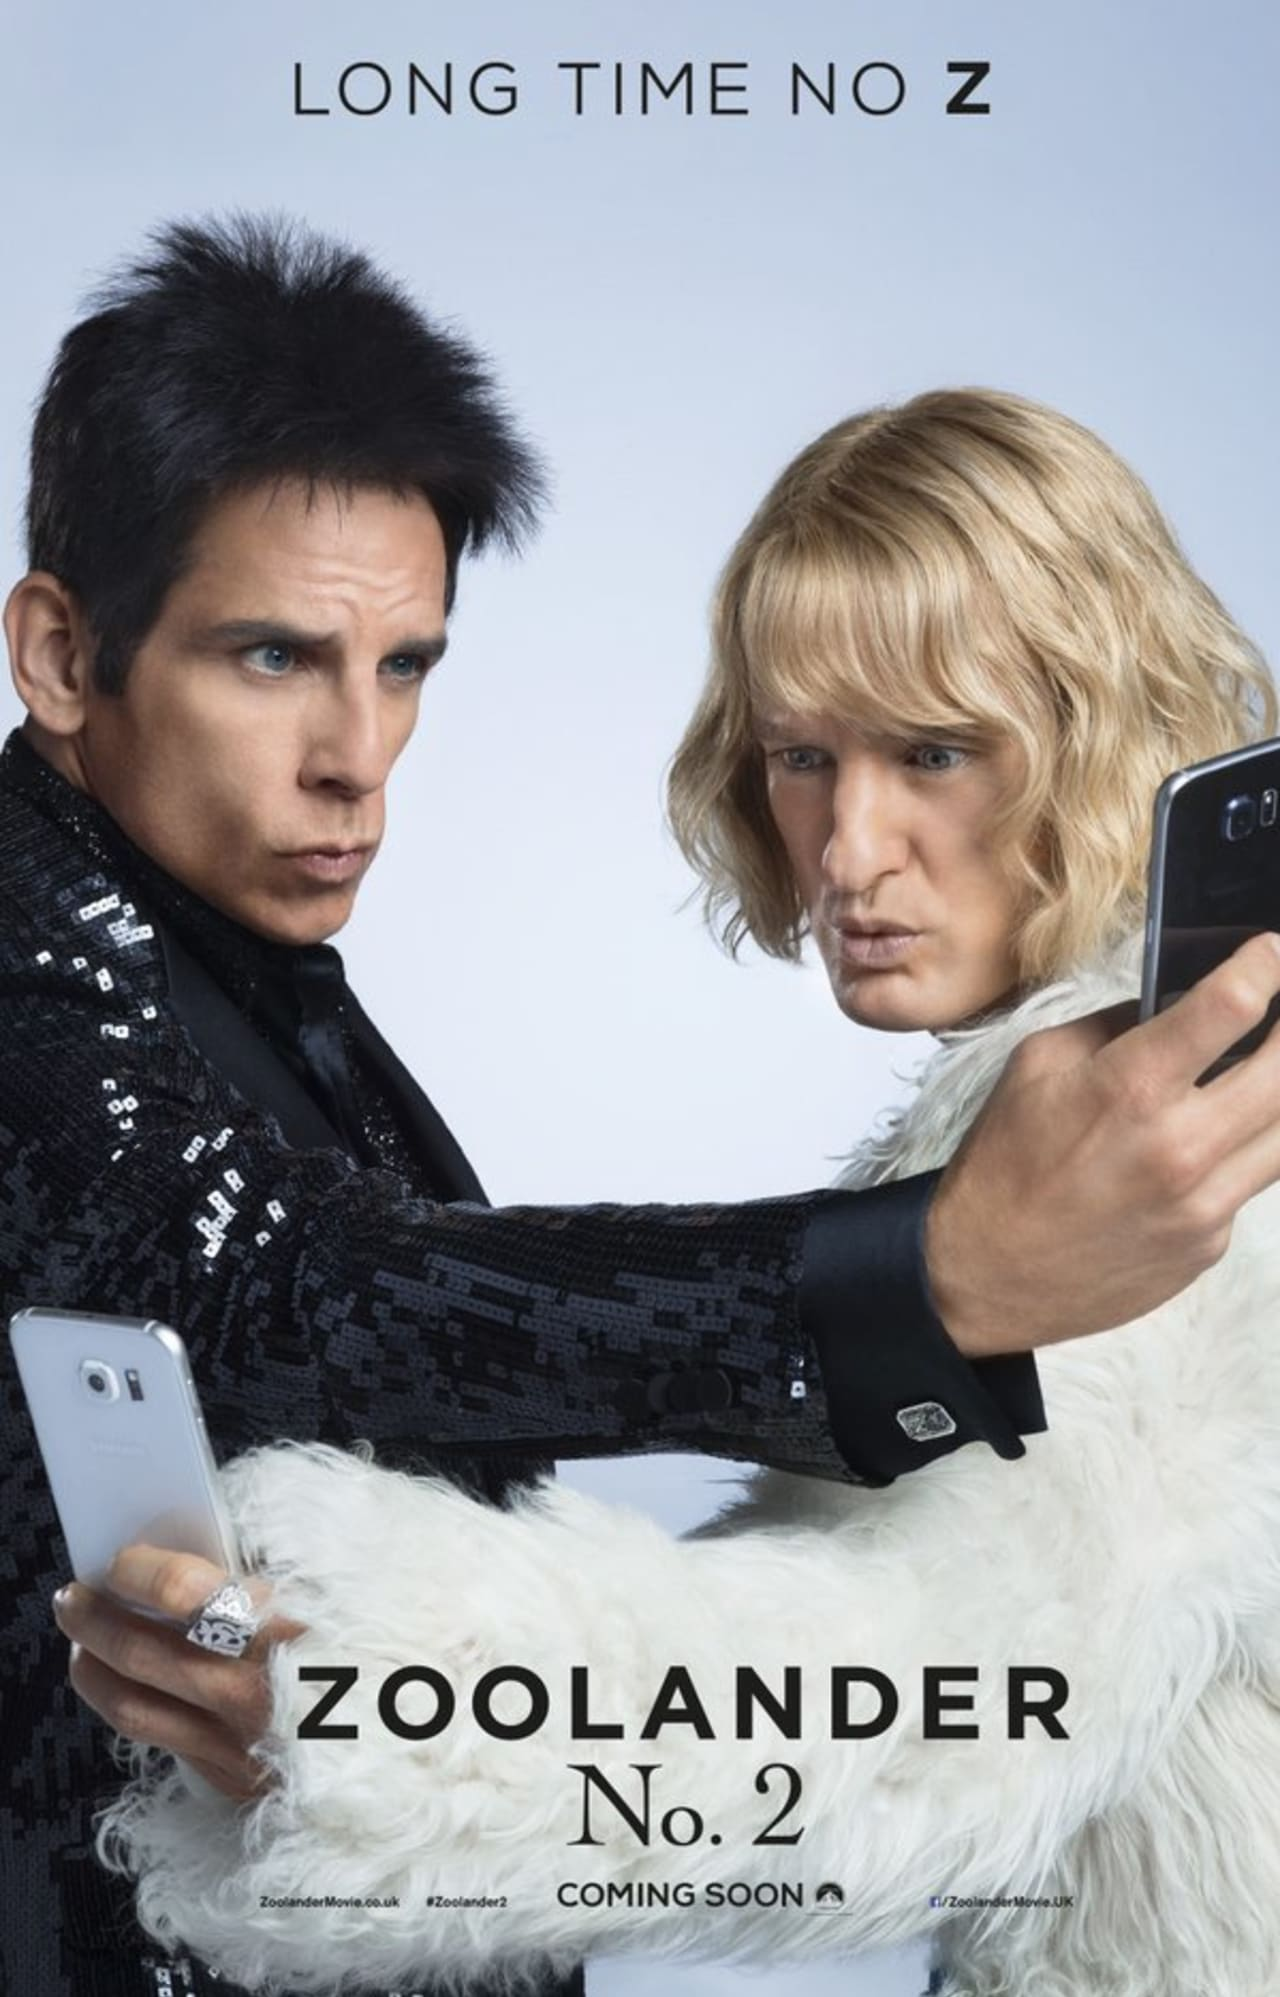 Ben Stiller And Owen Wilson Give Their Best Blue Steel For The Zoolander 2 Poster Complex